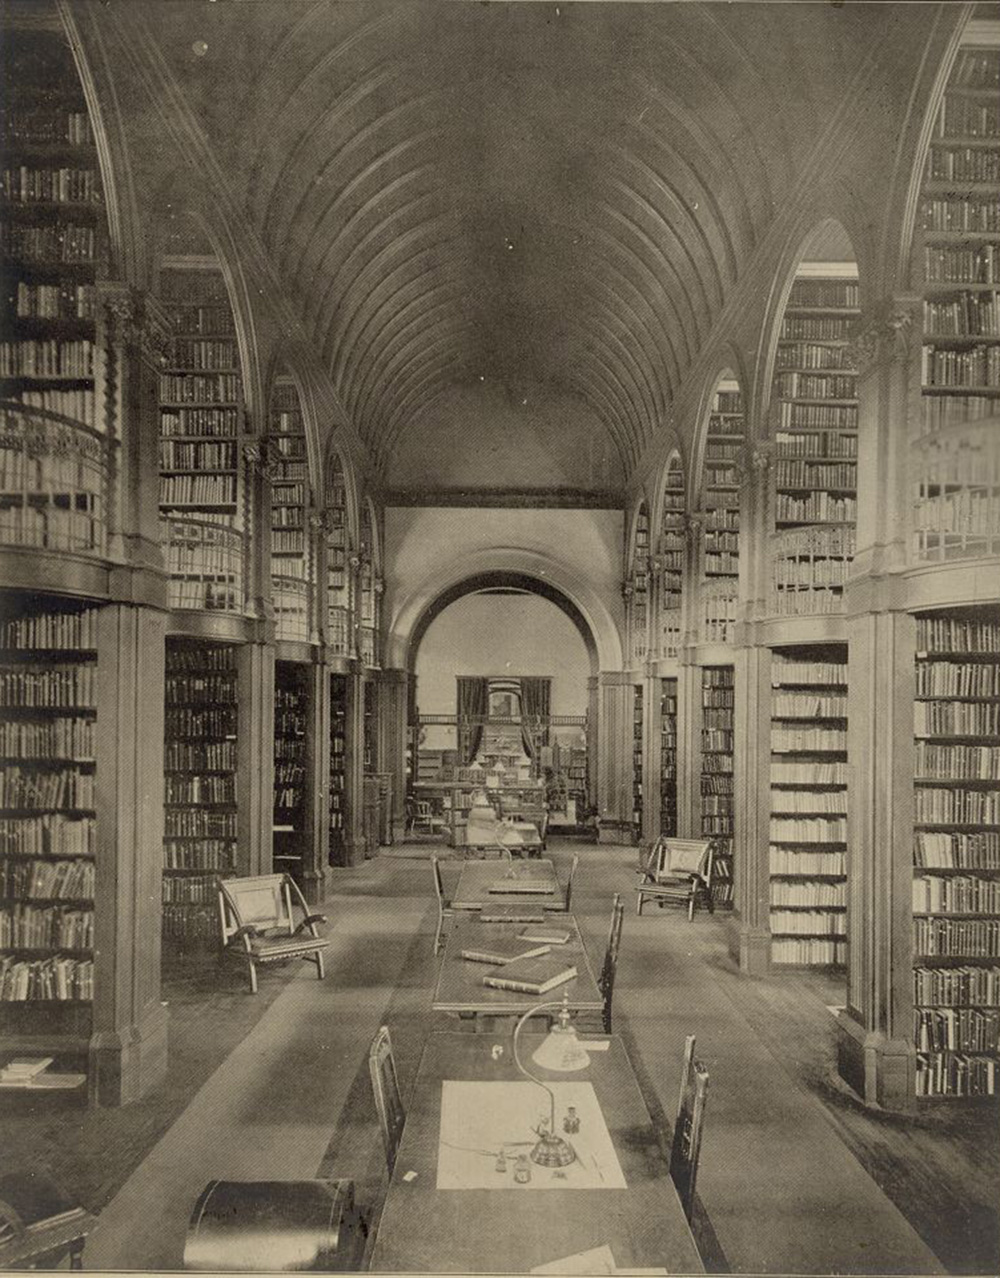 Book room, Woburn Public Library, designed by Gambrill & Richardson, c. 1880. The Library of Congress, Prints and Photographs.